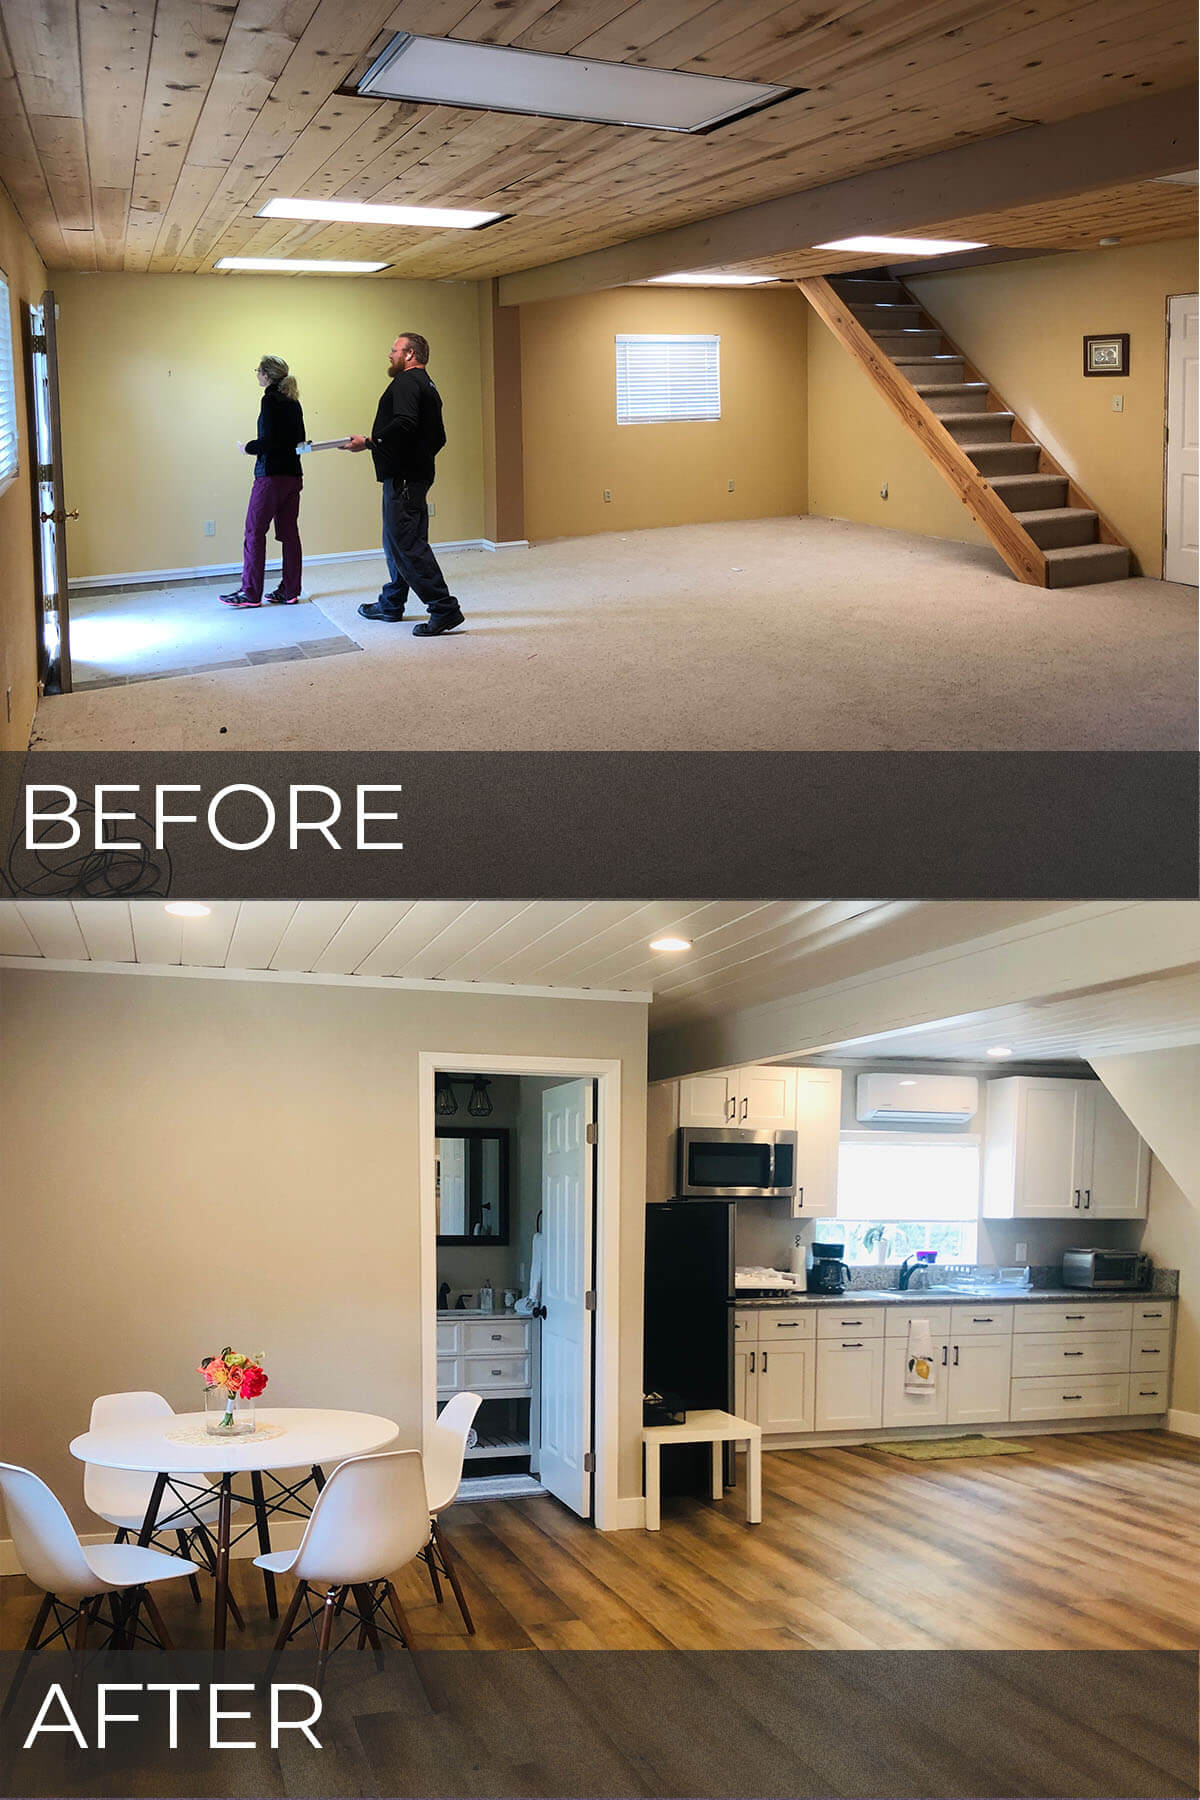 Casita bathroom and kitchen before and after